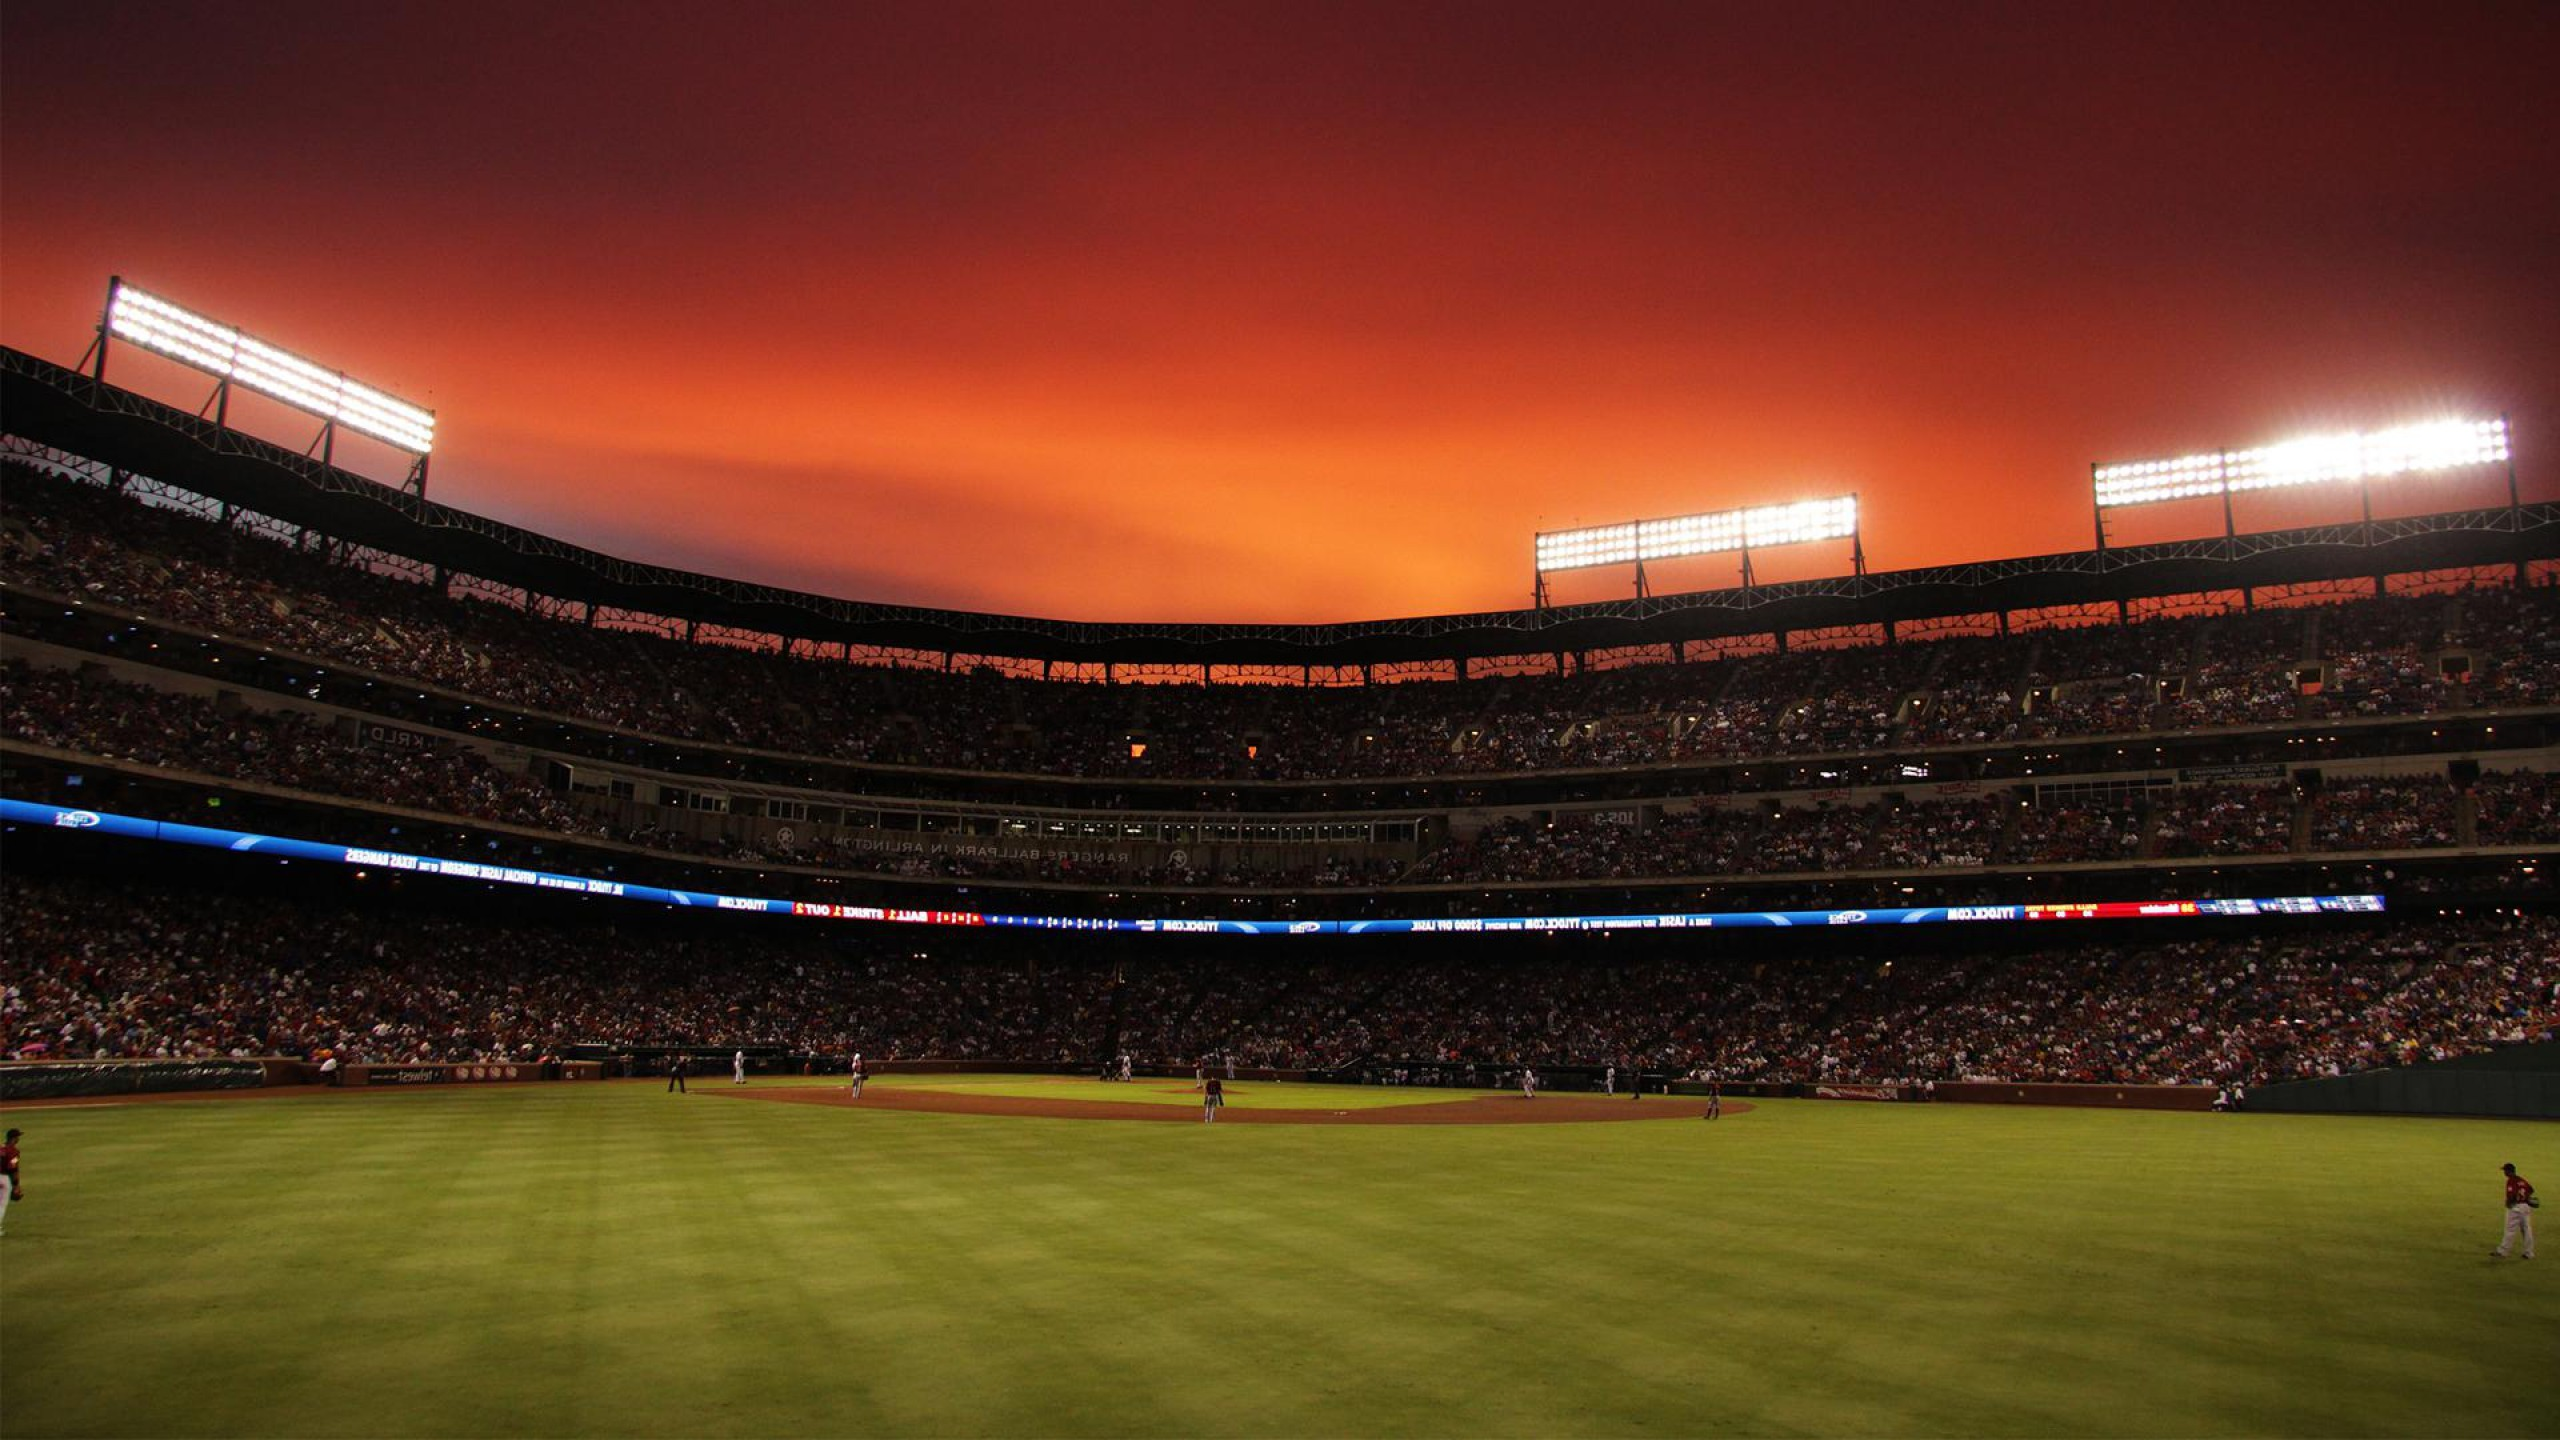 2560x1440 ... 49 Cool Baseball HD Wallpapers/Backgrounds For Free Download, ...